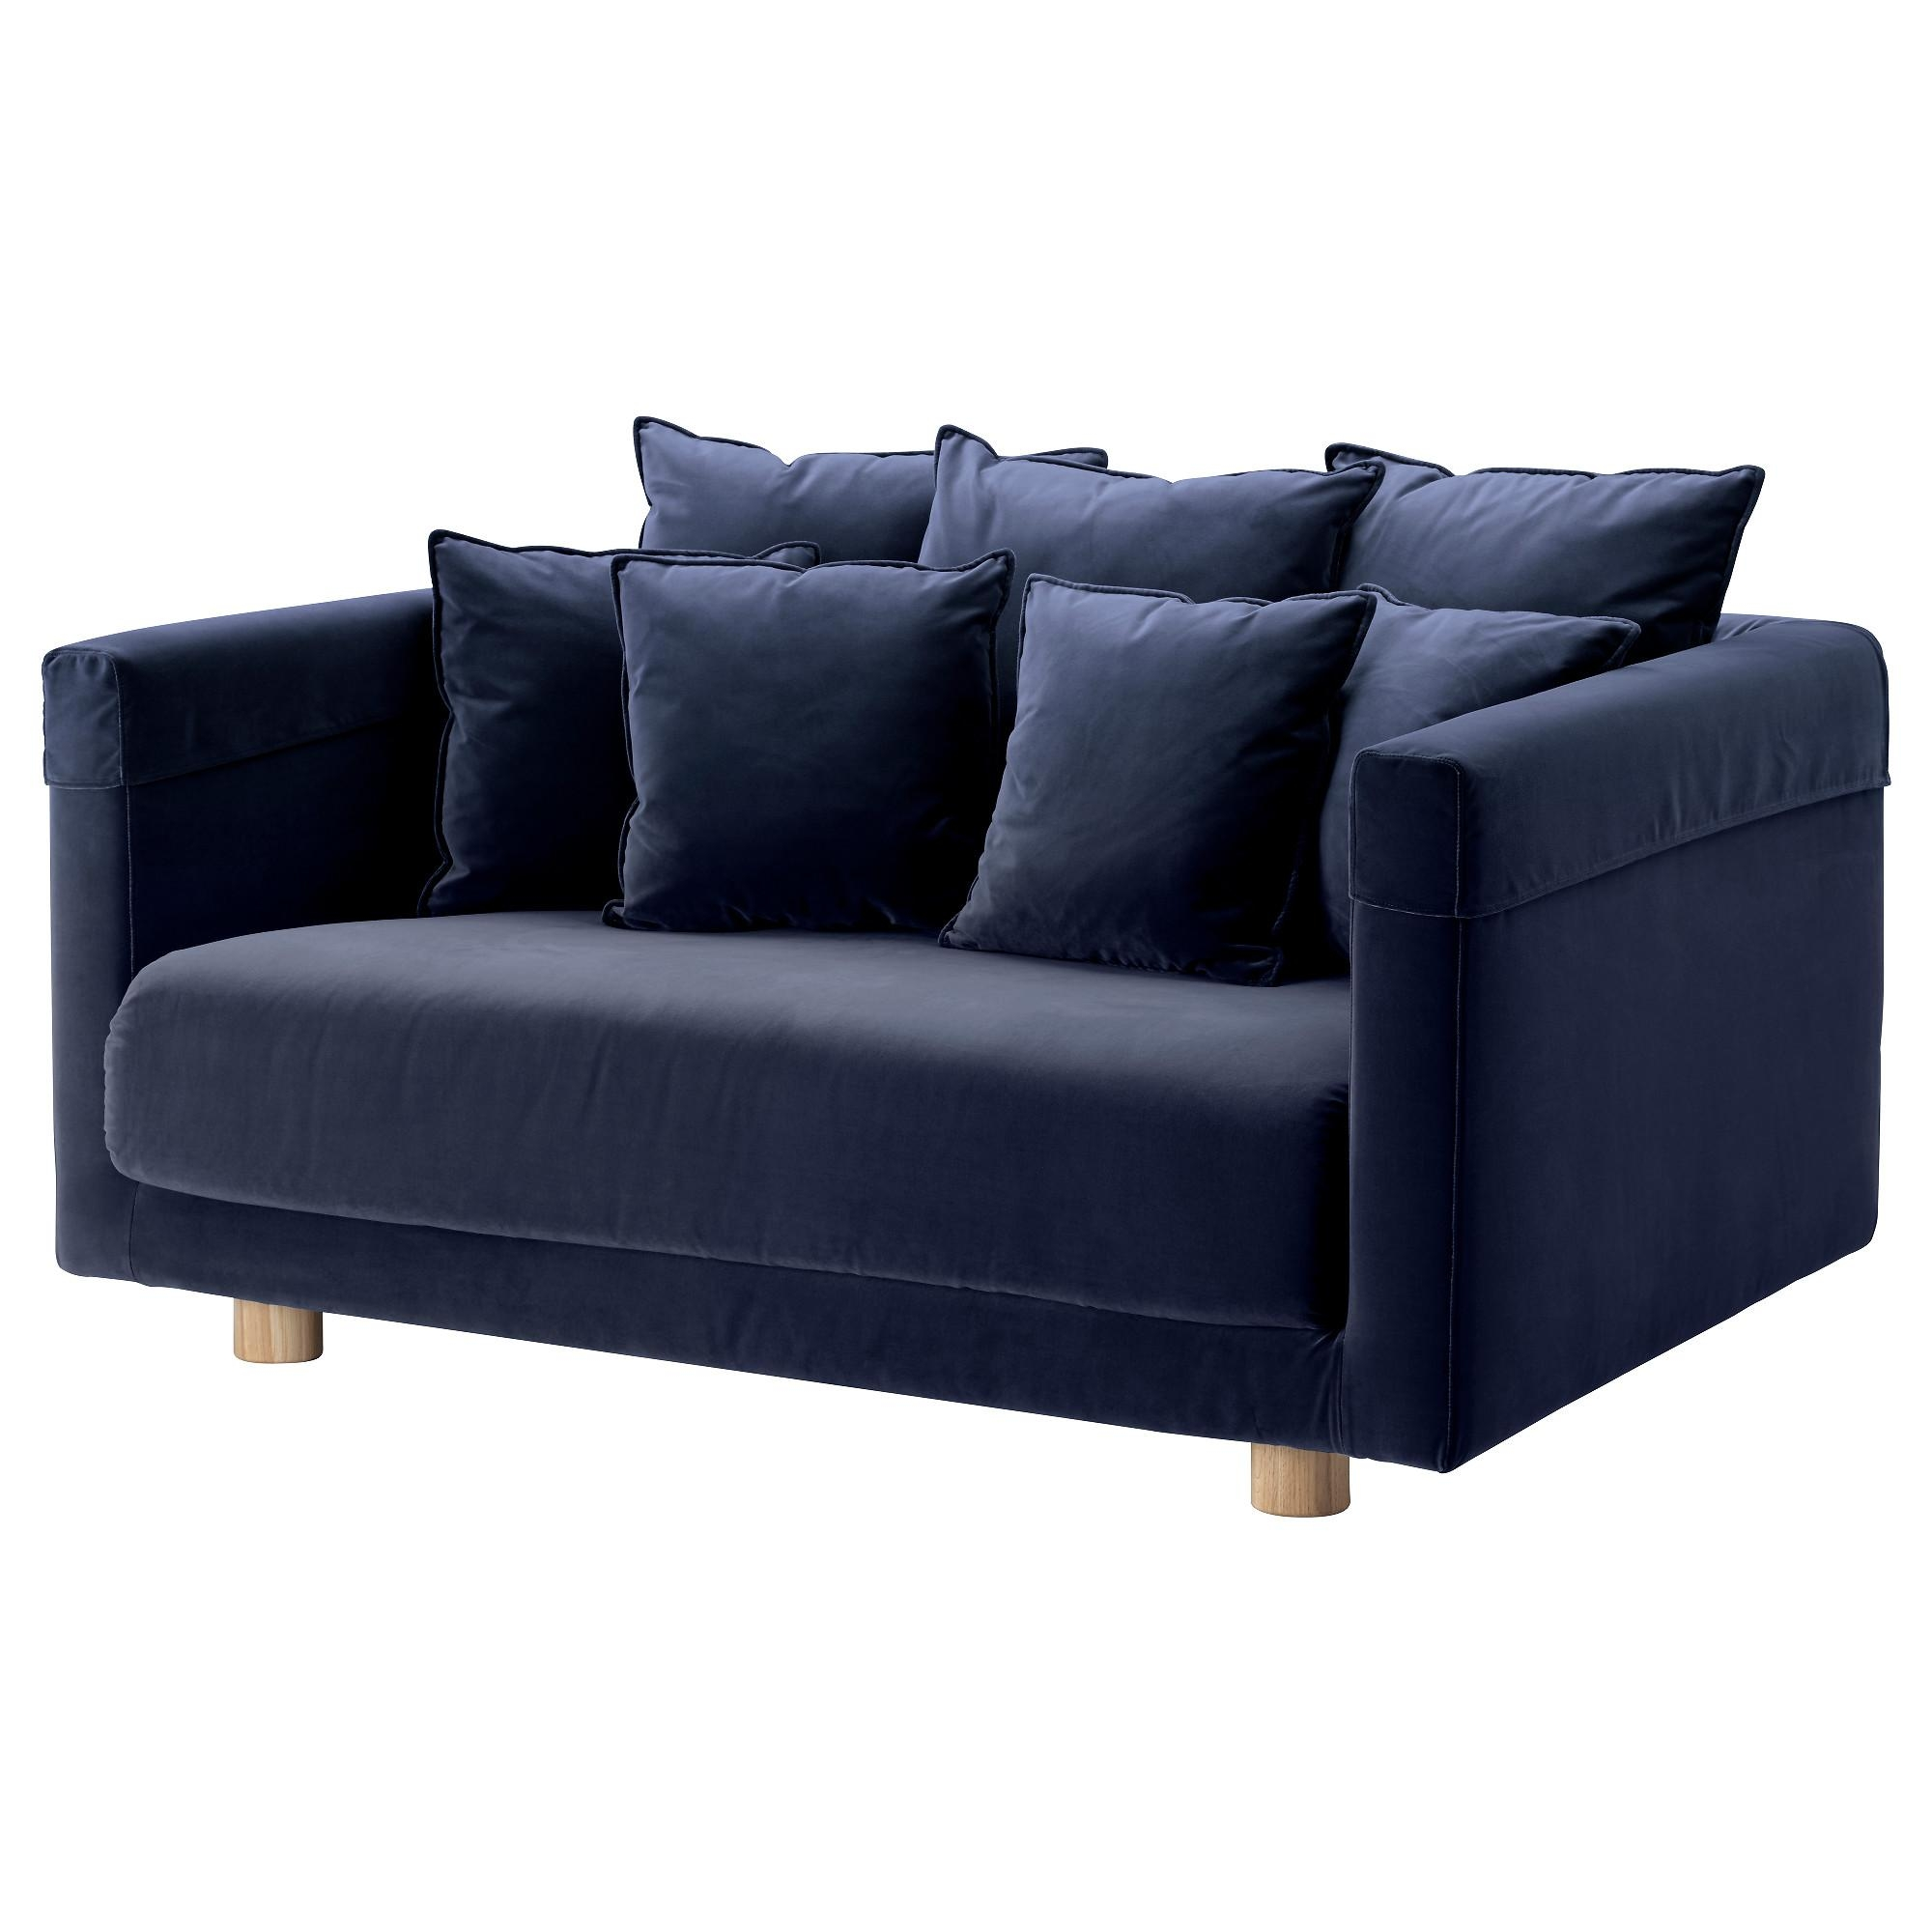 Fabric Sofas | Ikea Ireland – Dublin Intended For Fabric Sofas (Image 11 of 20)